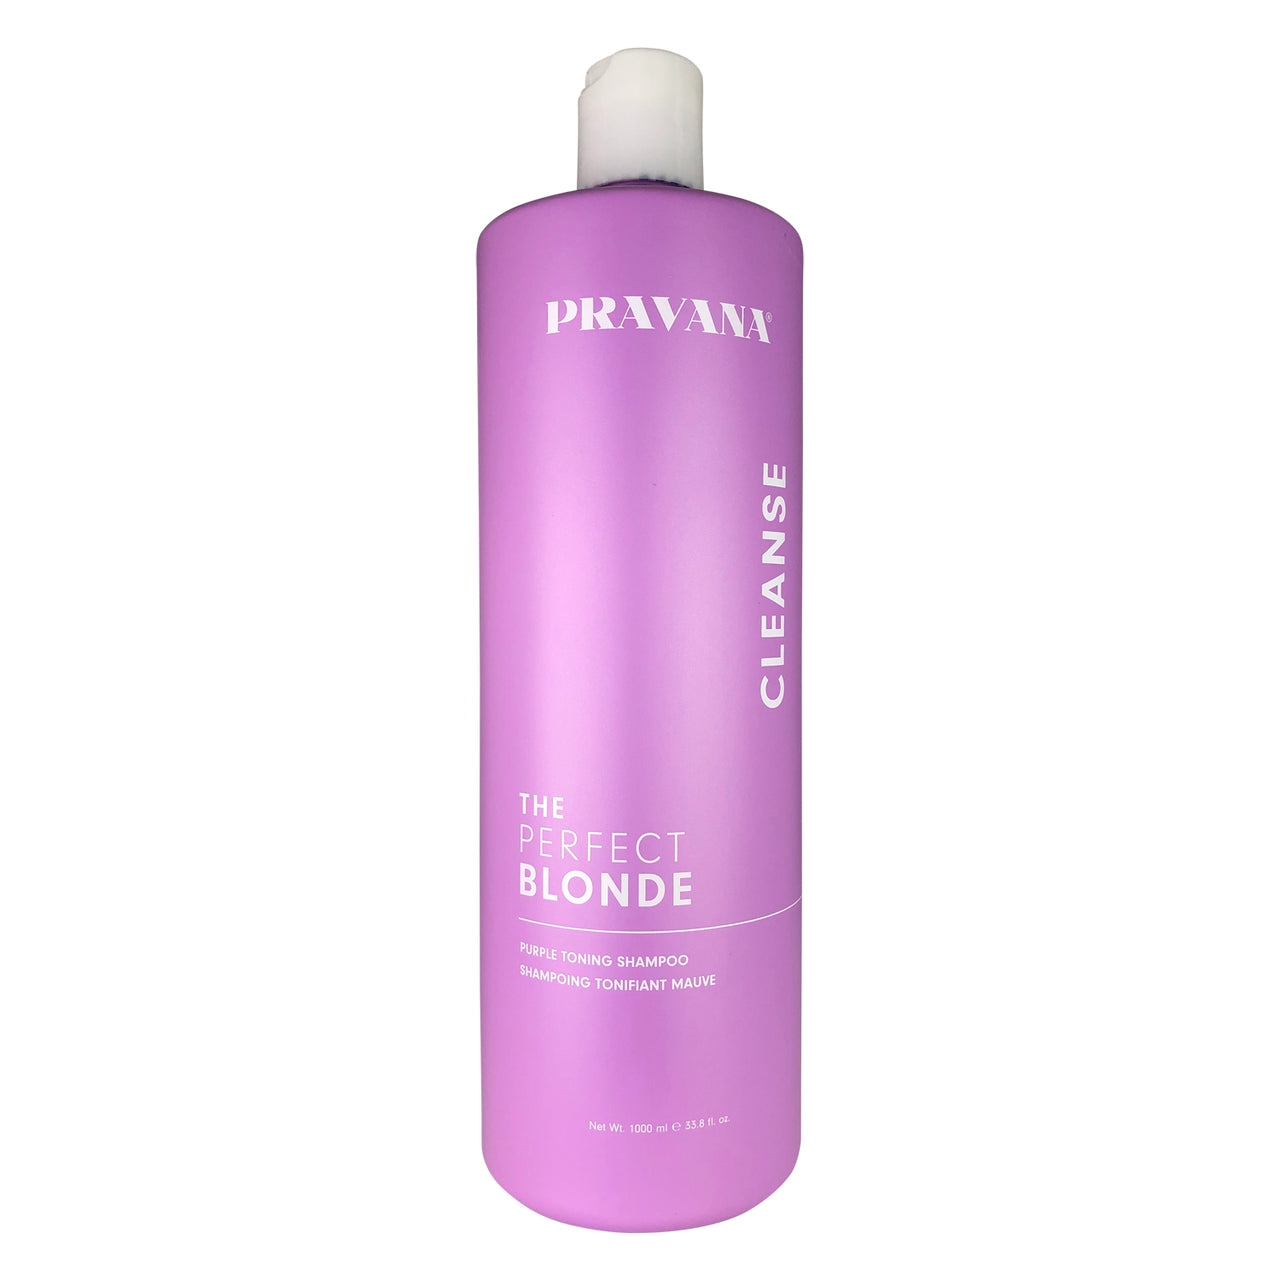 Pravana The Perfect Blonde Purple Toning Hair Shampoo 33.8 oz 100% Vegan Gluten Free